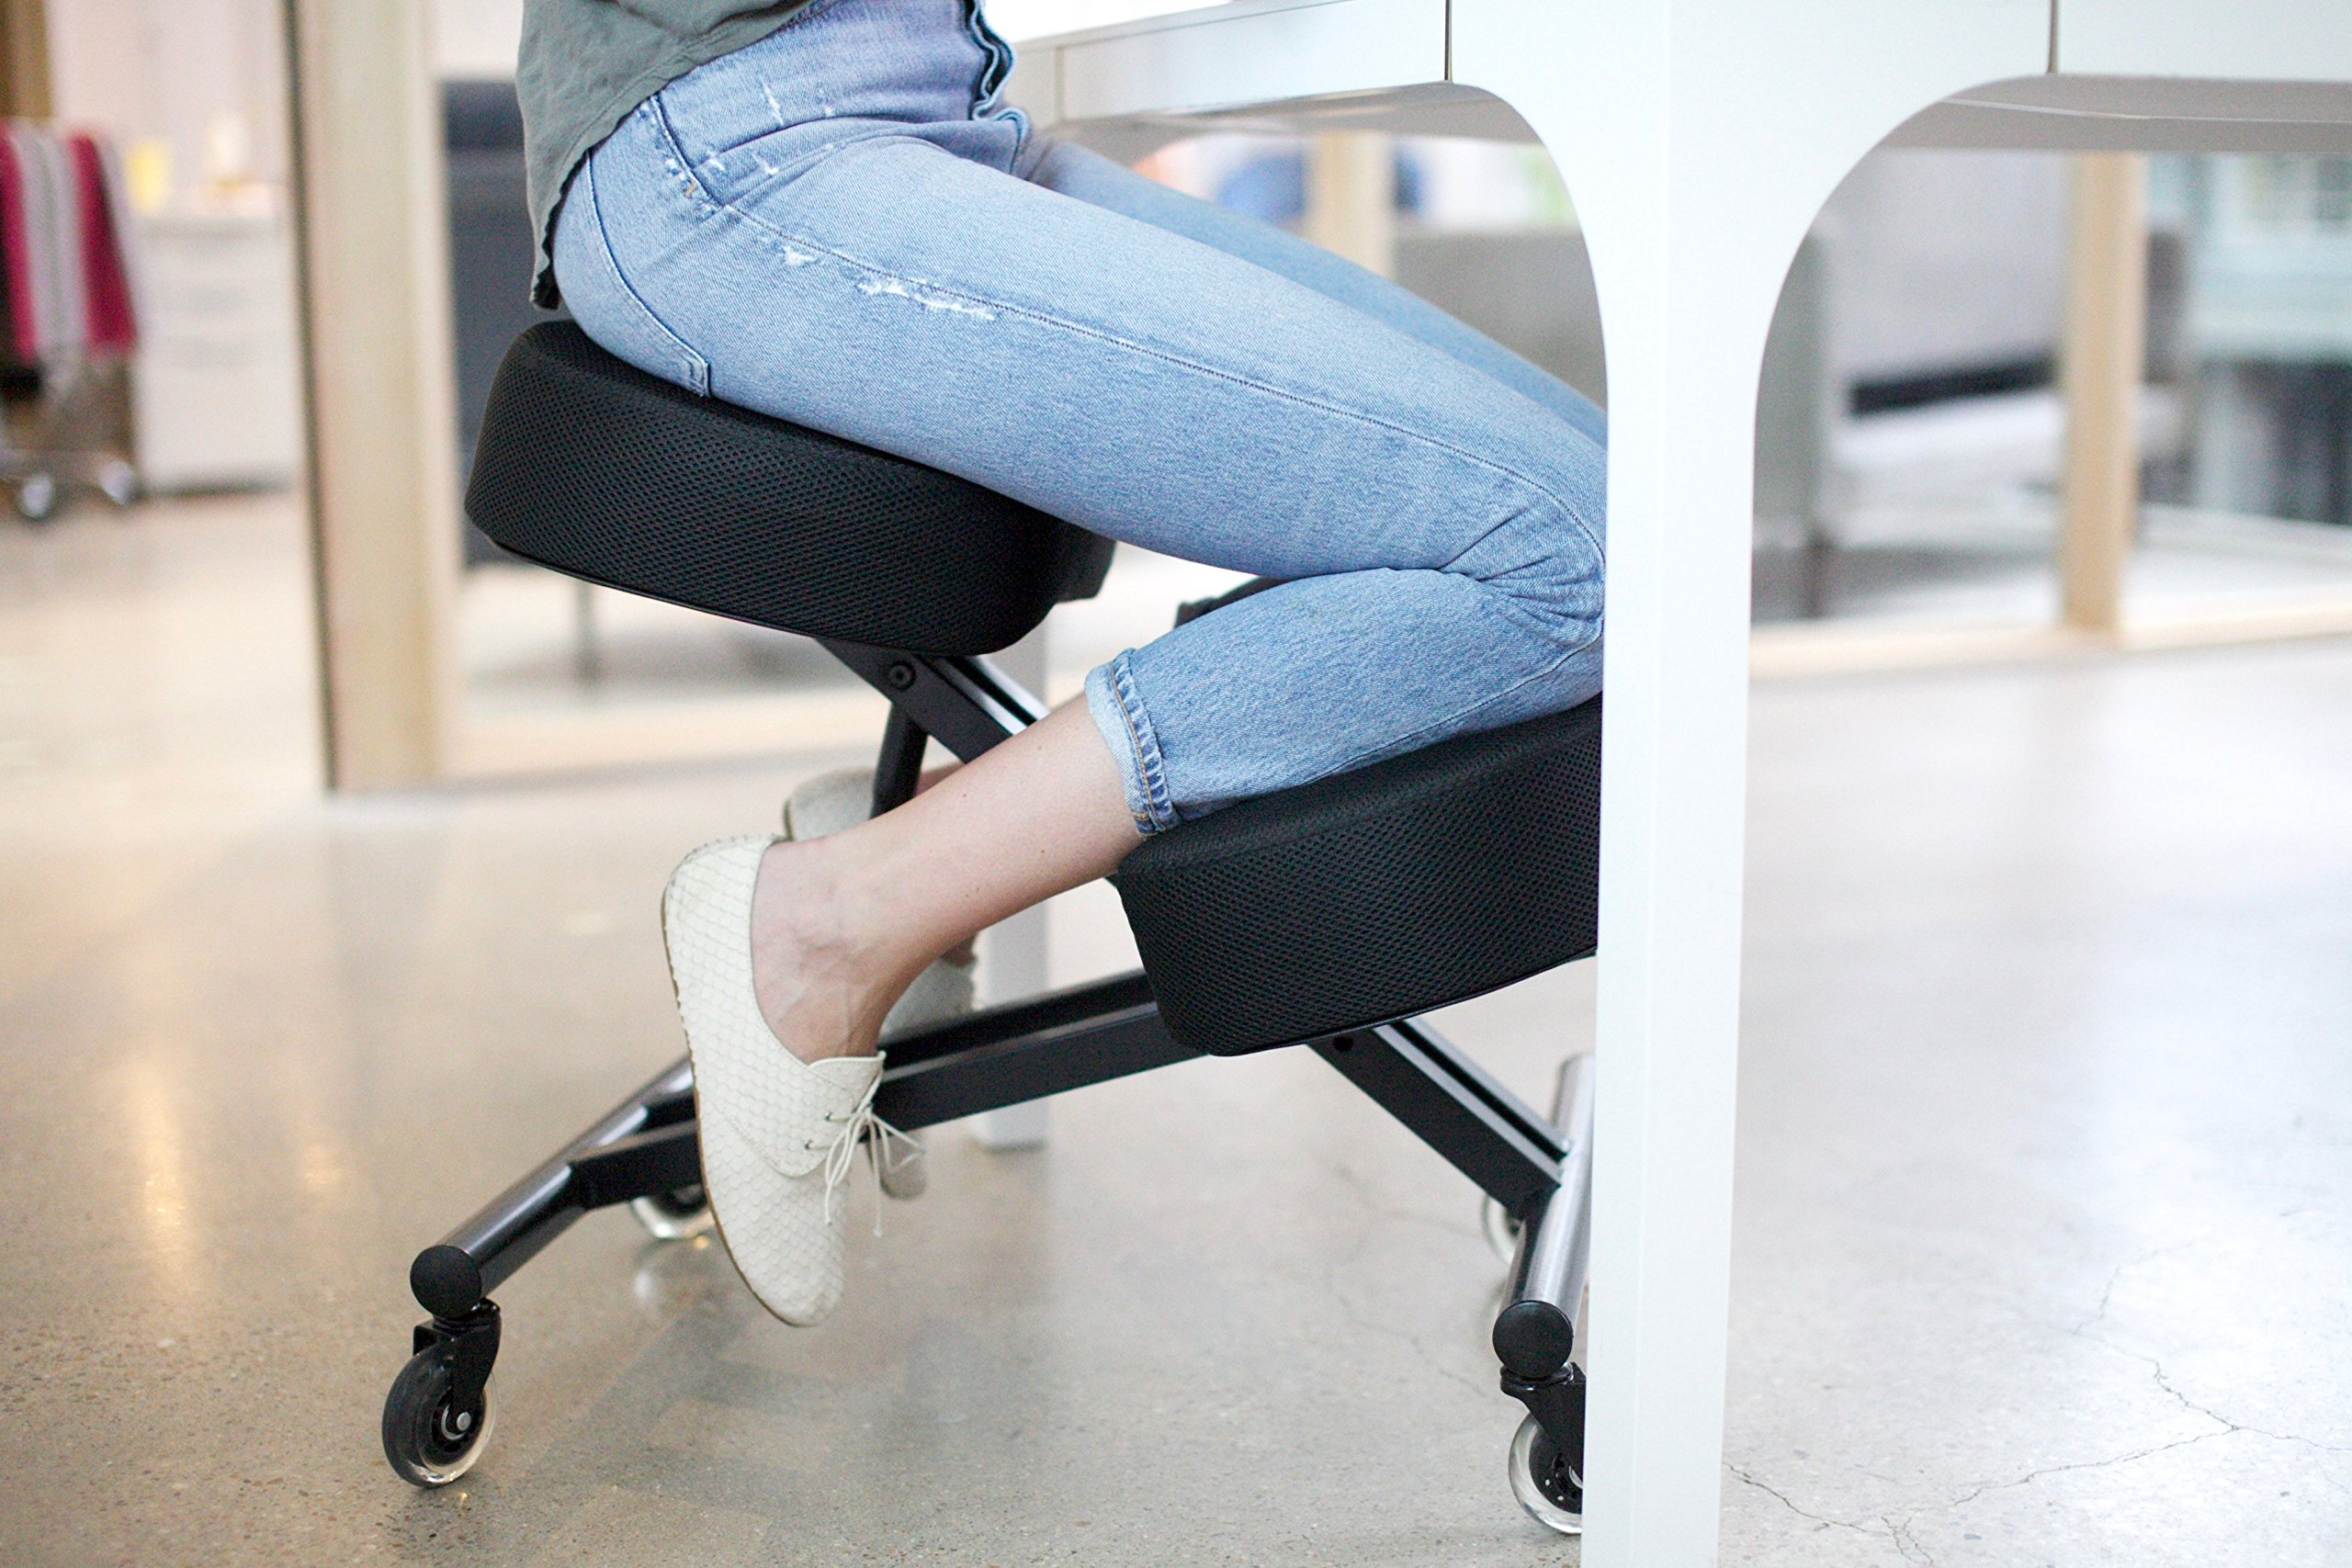 Sleekform Kneeling Chair with Adjustable Seat Angle & Knee Pad Height | Customizable Kneel Stool for Posture Correction & Back Pain | Great Home Office or Desk Chair | Mesh, Black